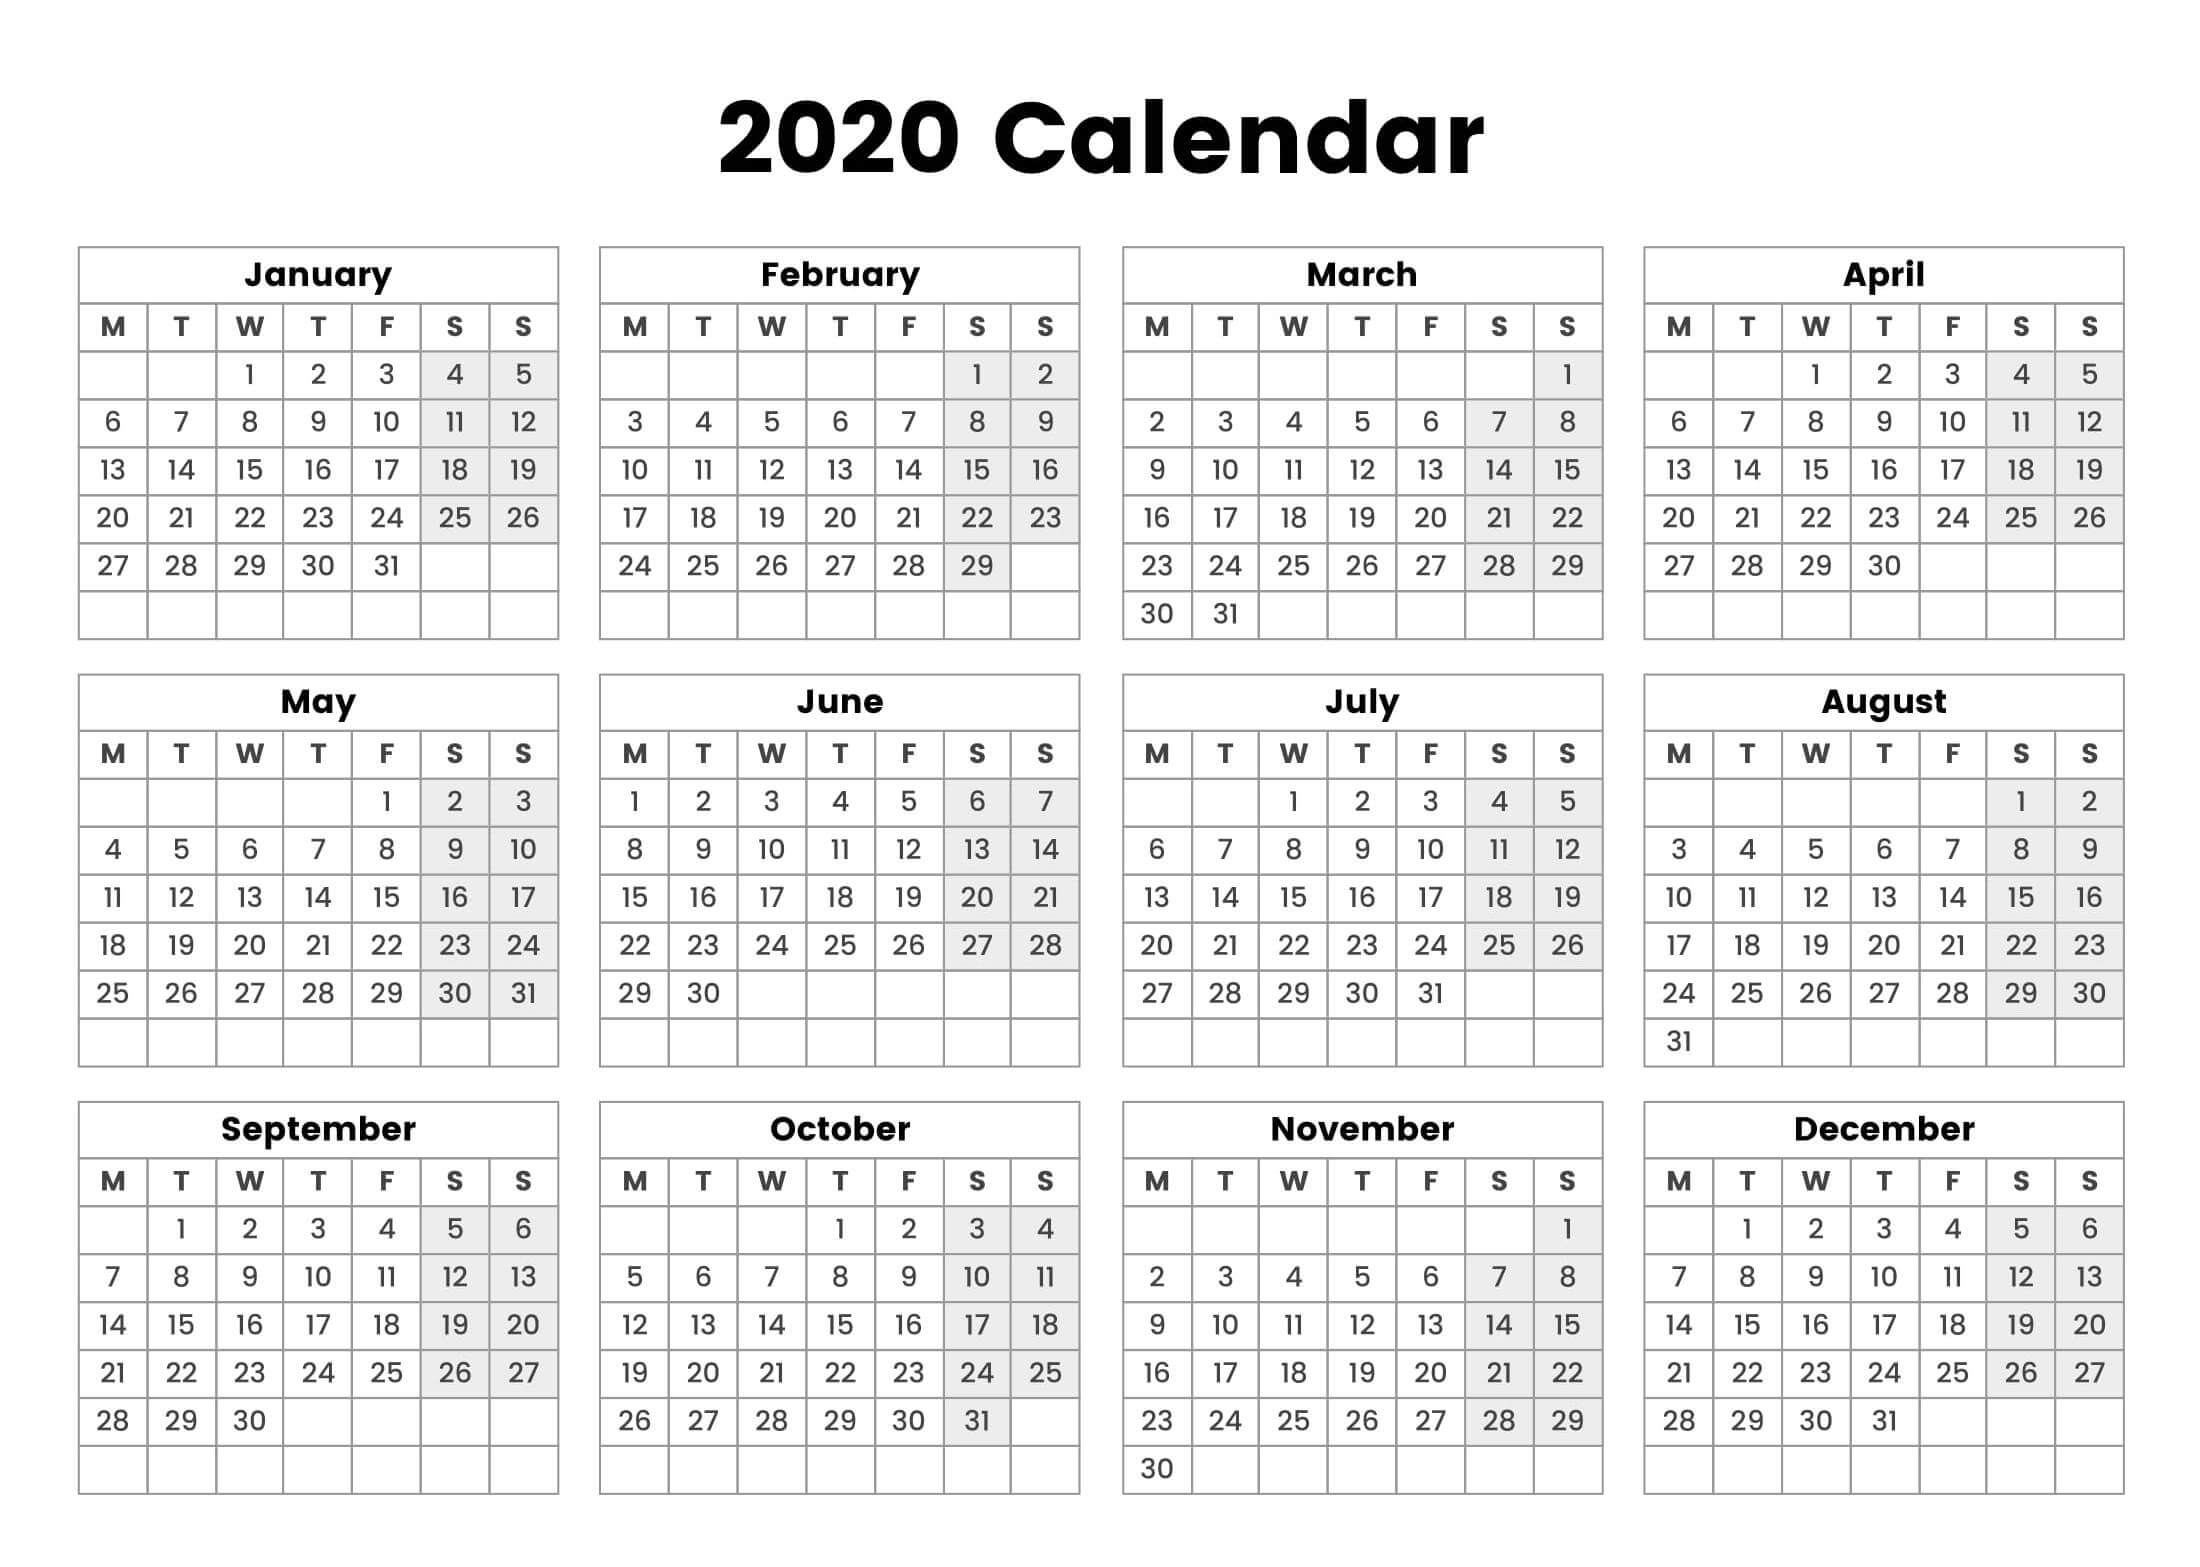 One Page Yearly Calendar 2020 Printable Cute - 2019 Exceptional 2020 Calendar One Page